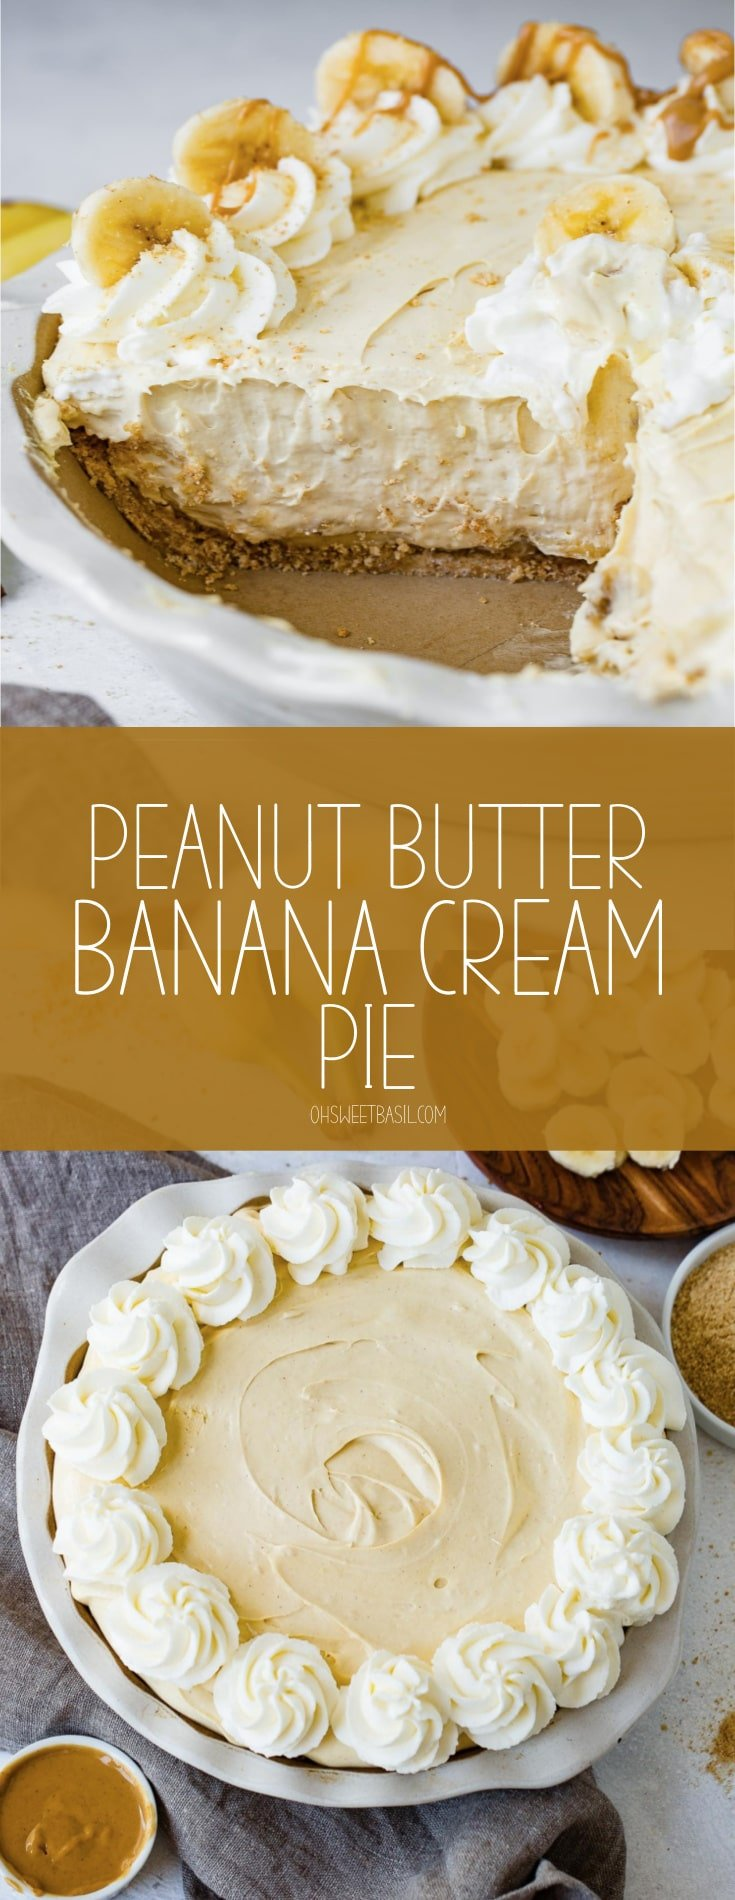 A peanut butter banana cream pie with a slice of pie removed. The pie is topped with whipped cream and sliced bananas around the edge.